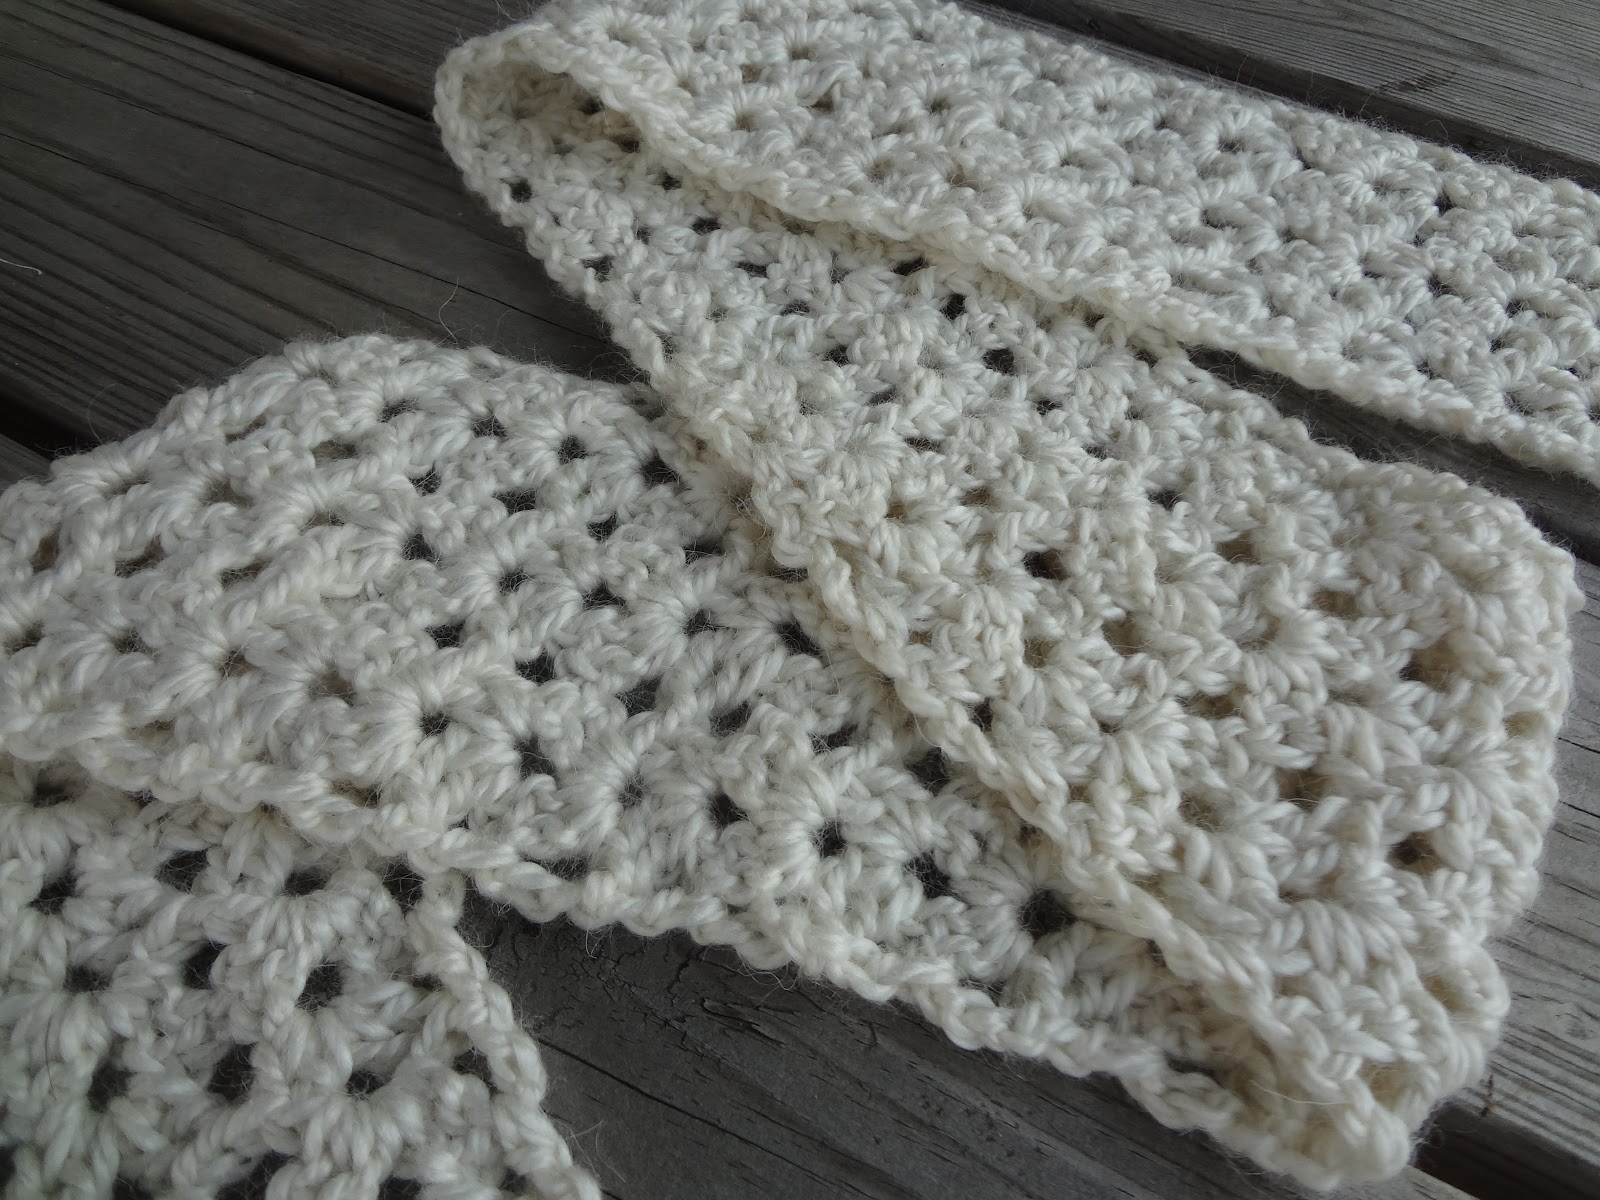 Elegant Crochet Scarf Patterns for Beginners Free Crochet Stitches with Pictures Of Marvelous 46 Photos Crochet Stitches with Pictures